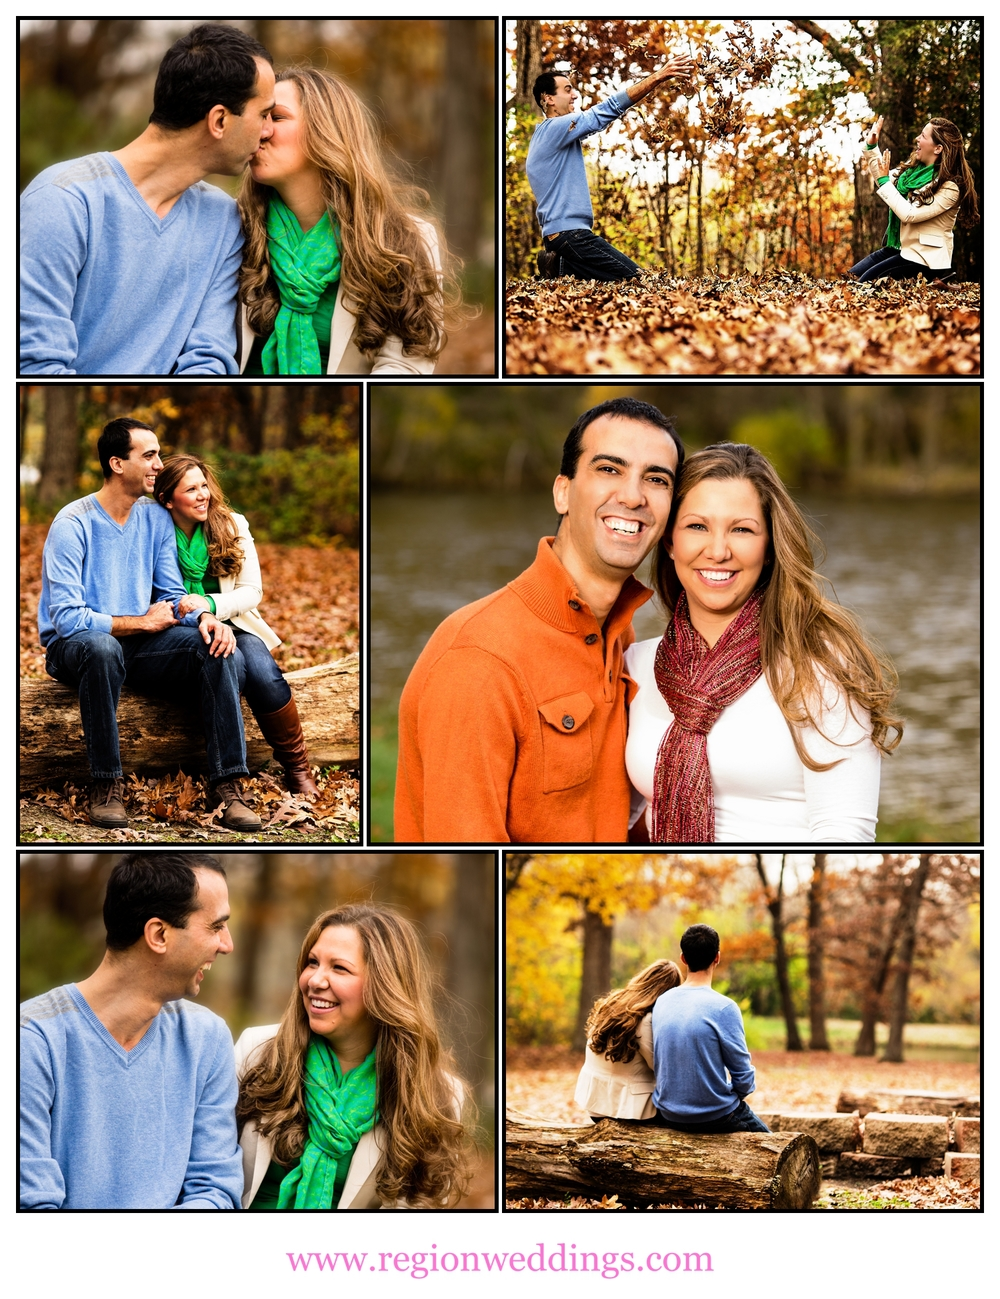 Autumn engagement photo collage.